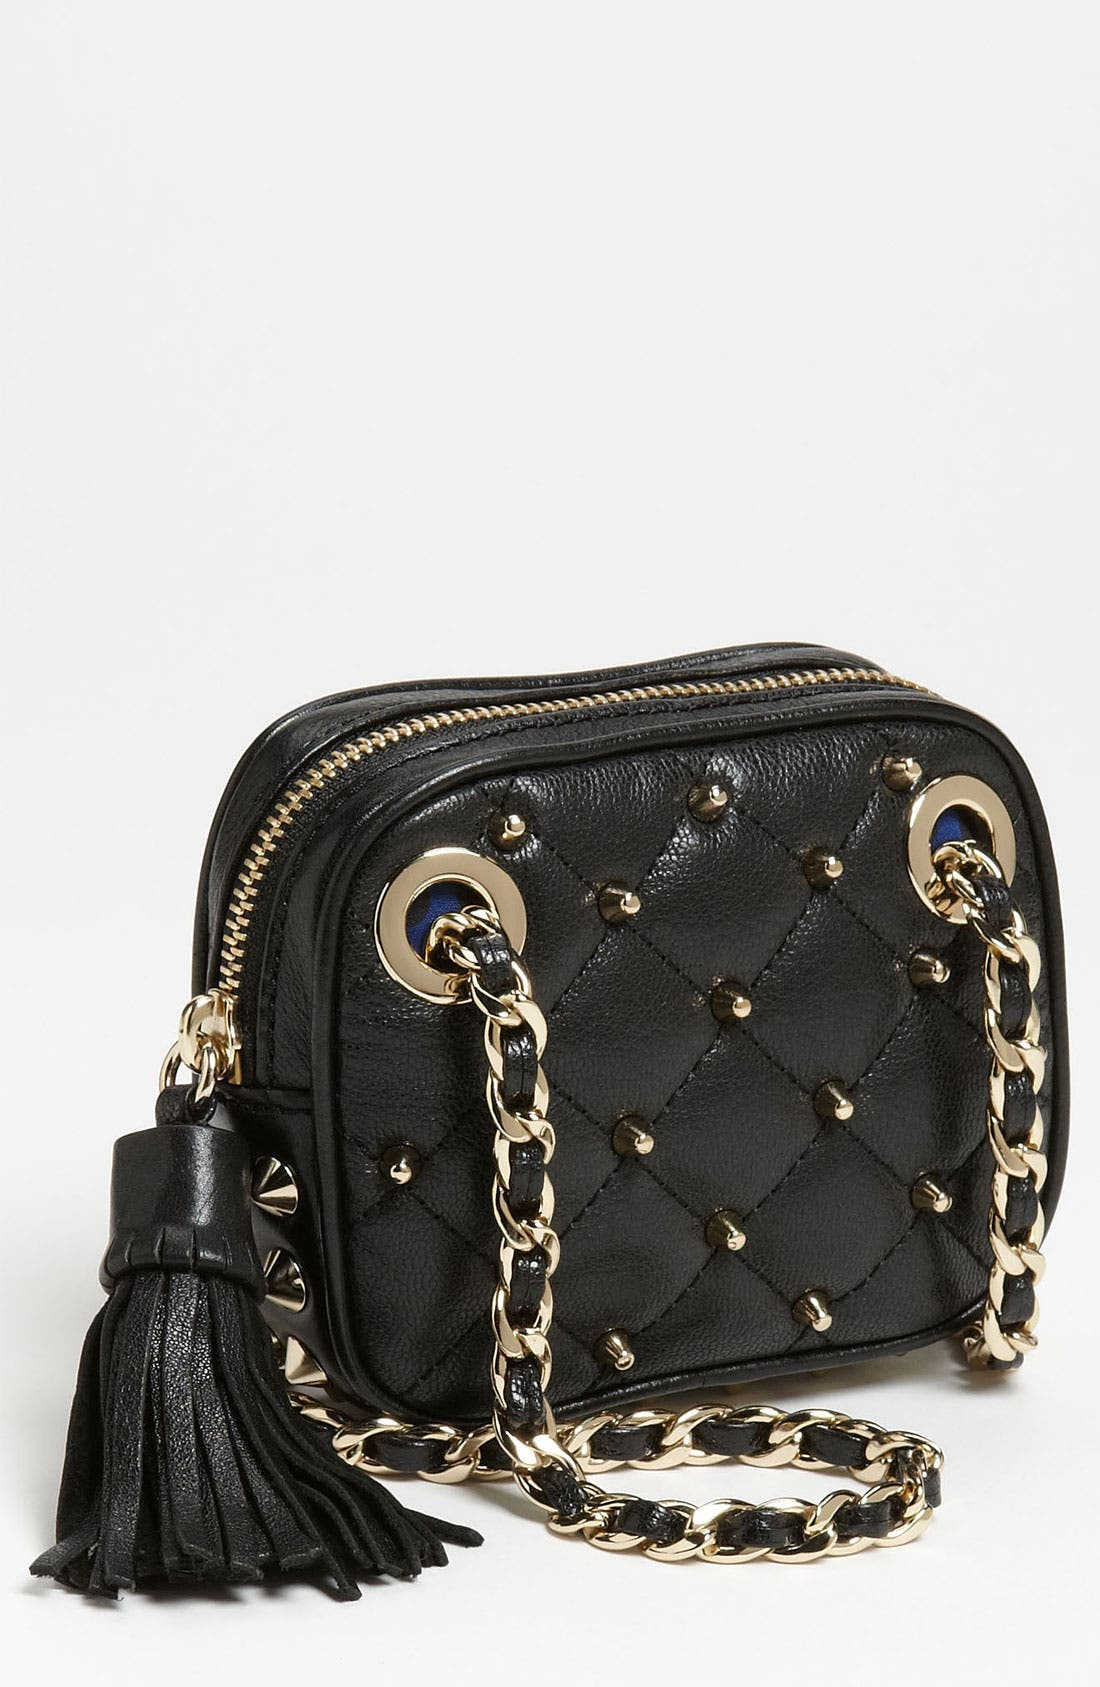 Alternate Image 1 Selected - Rebecca Minkoff 'Mini Flirty' Crossbody Bag